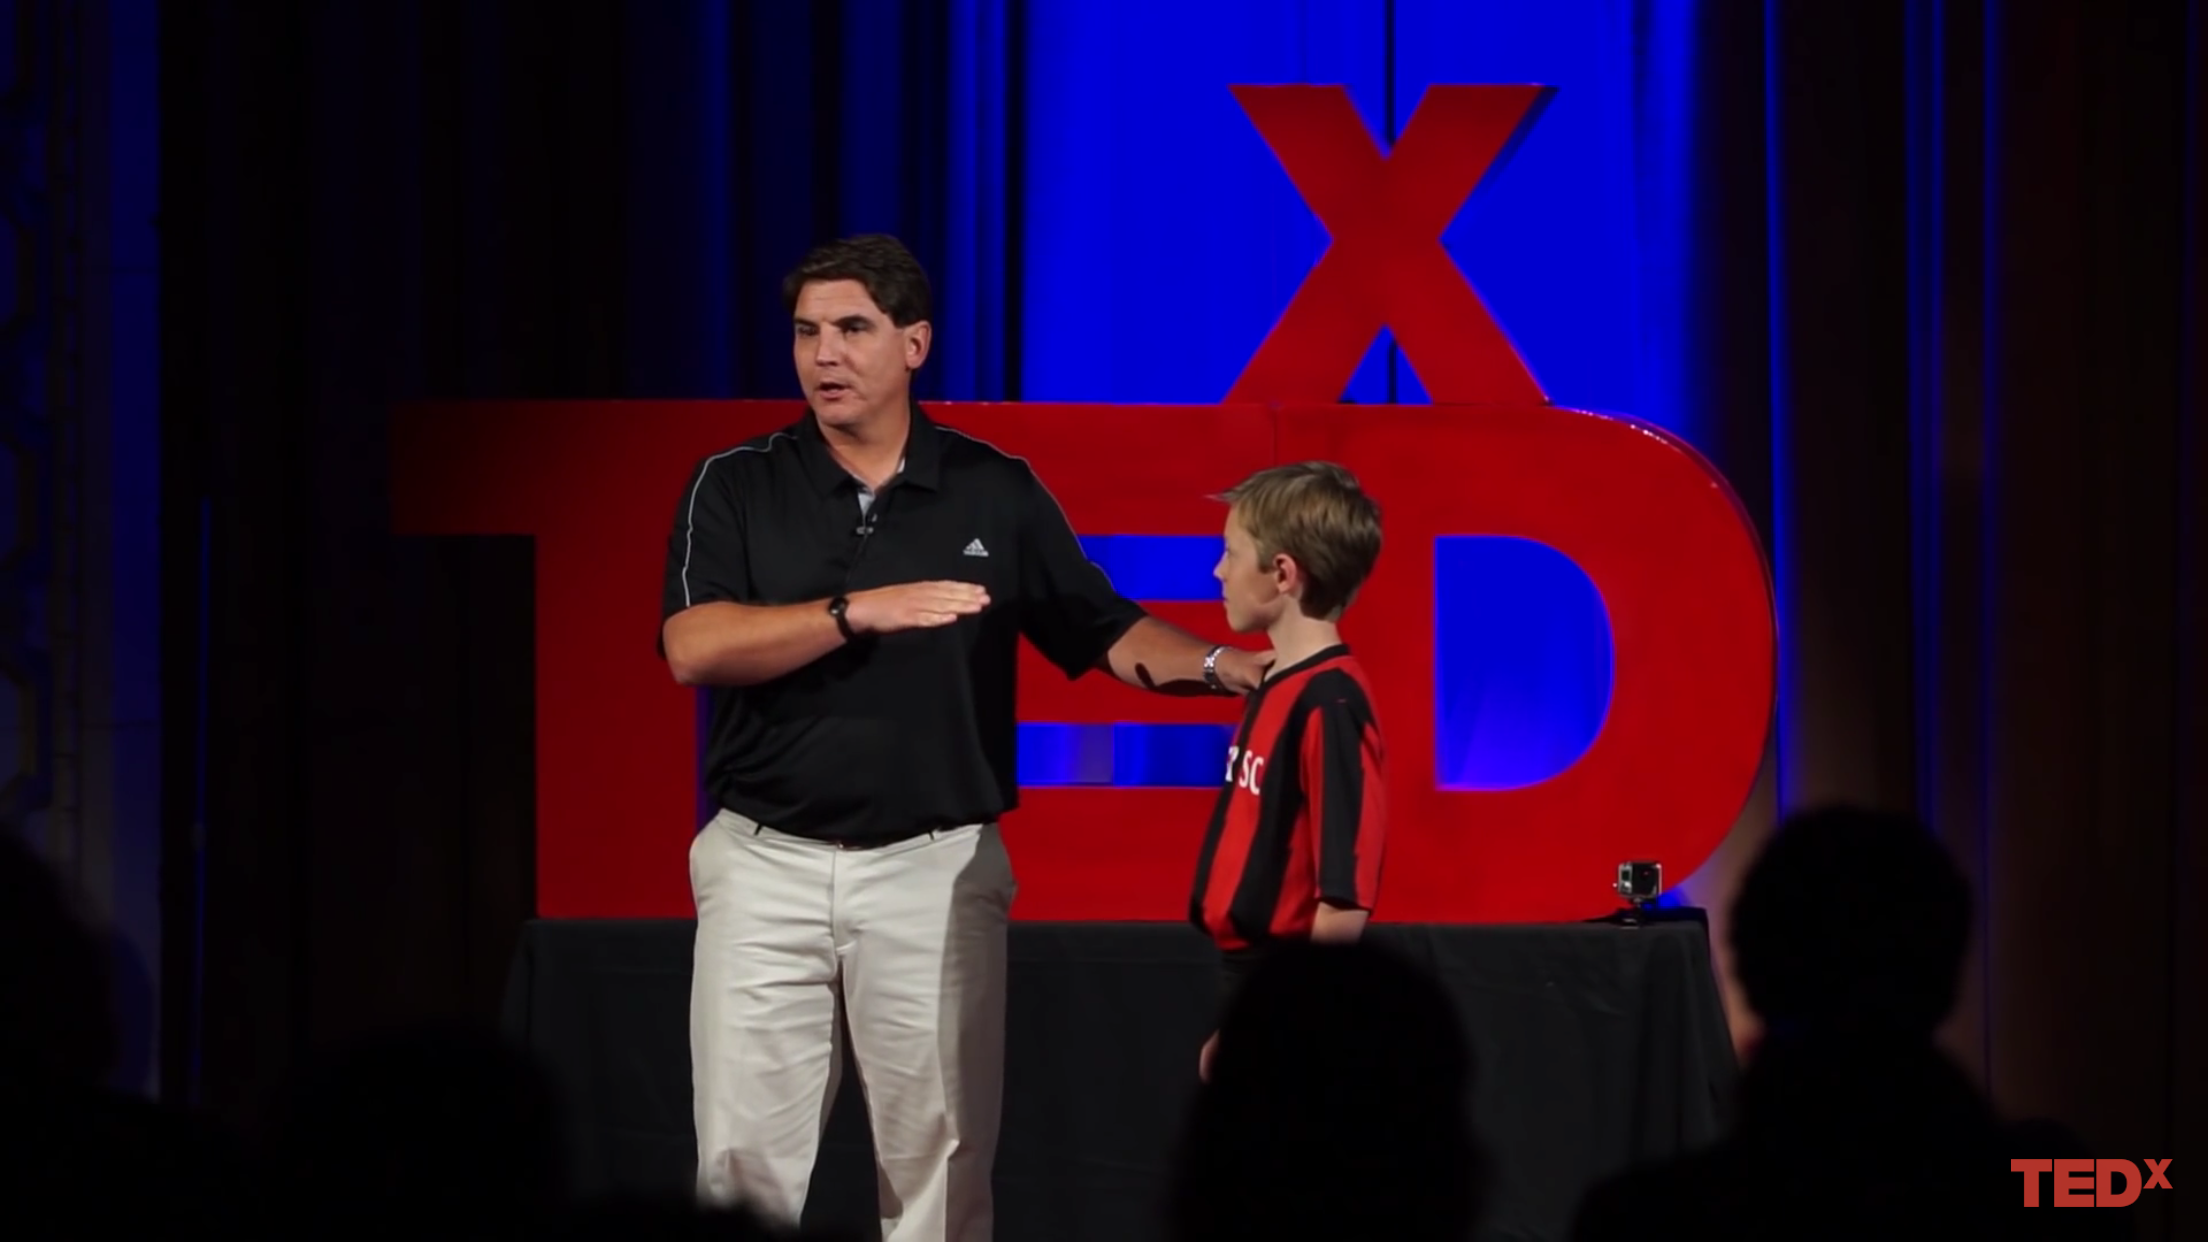 coach reed at tedx